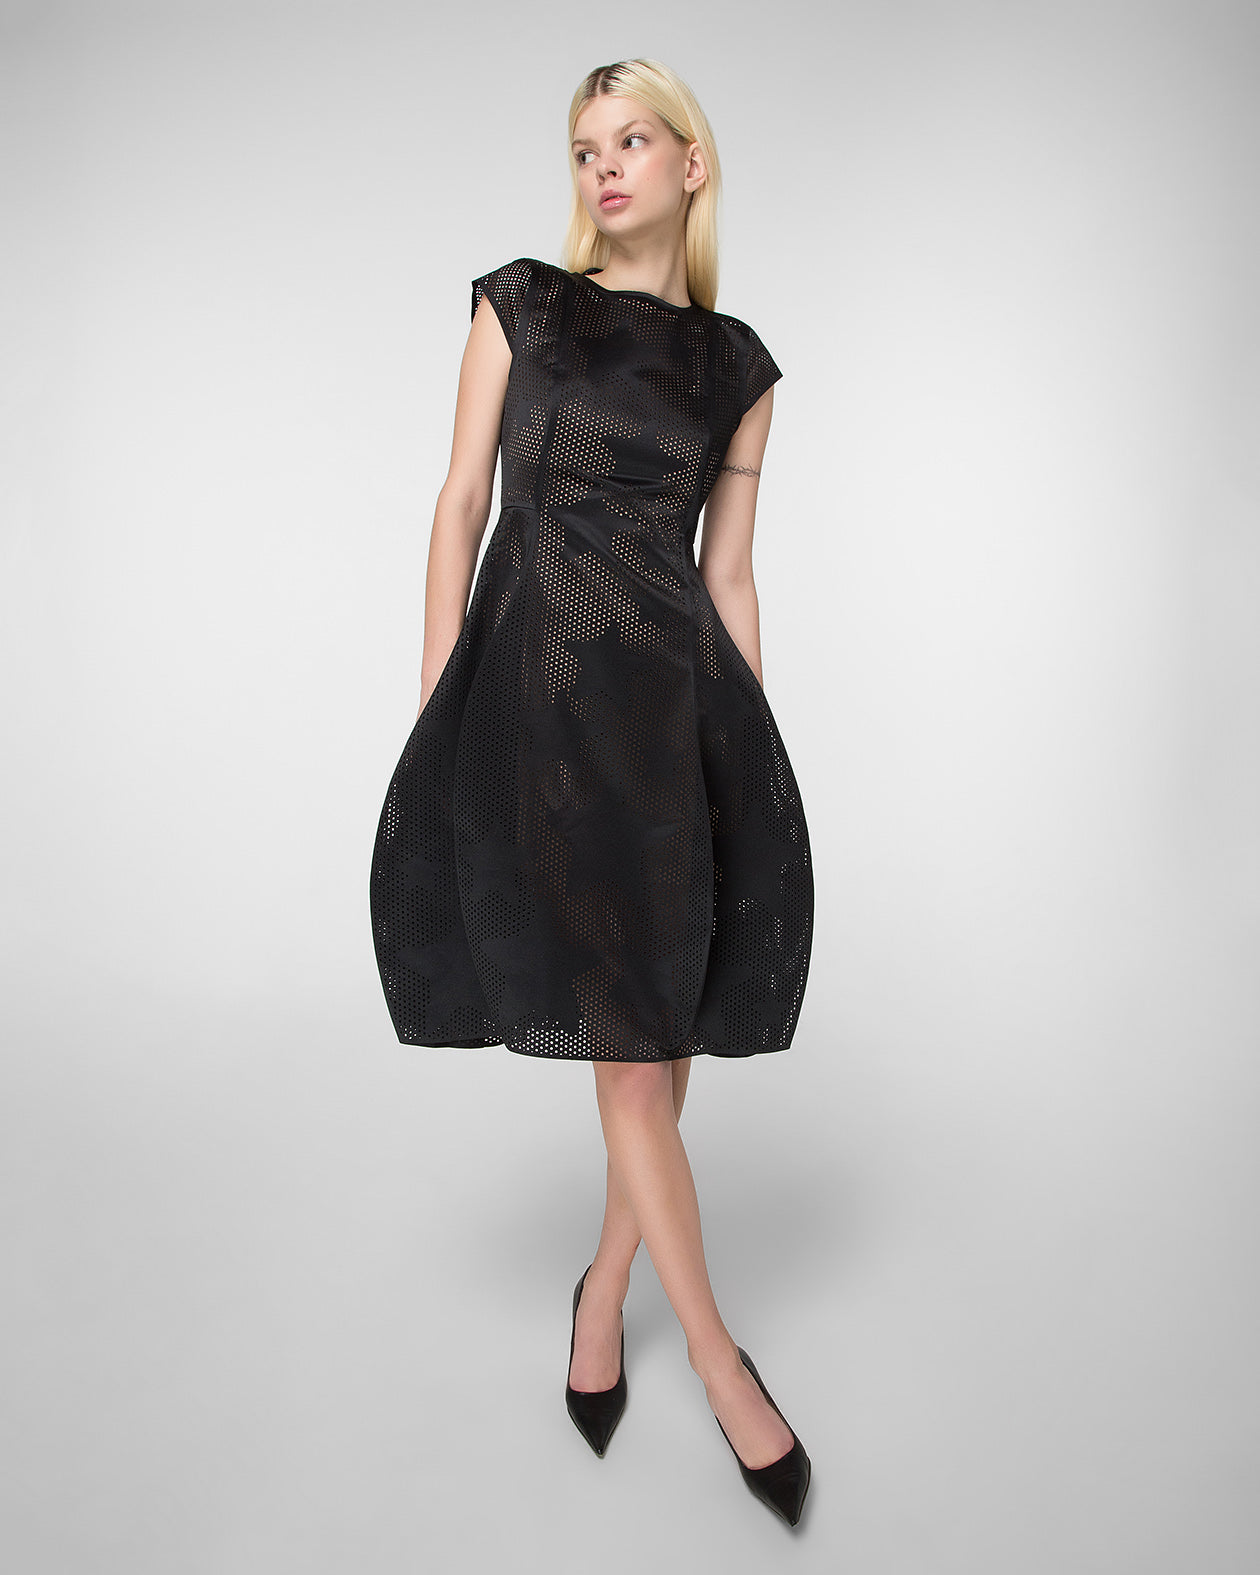 Fit & flare laser-cut dress